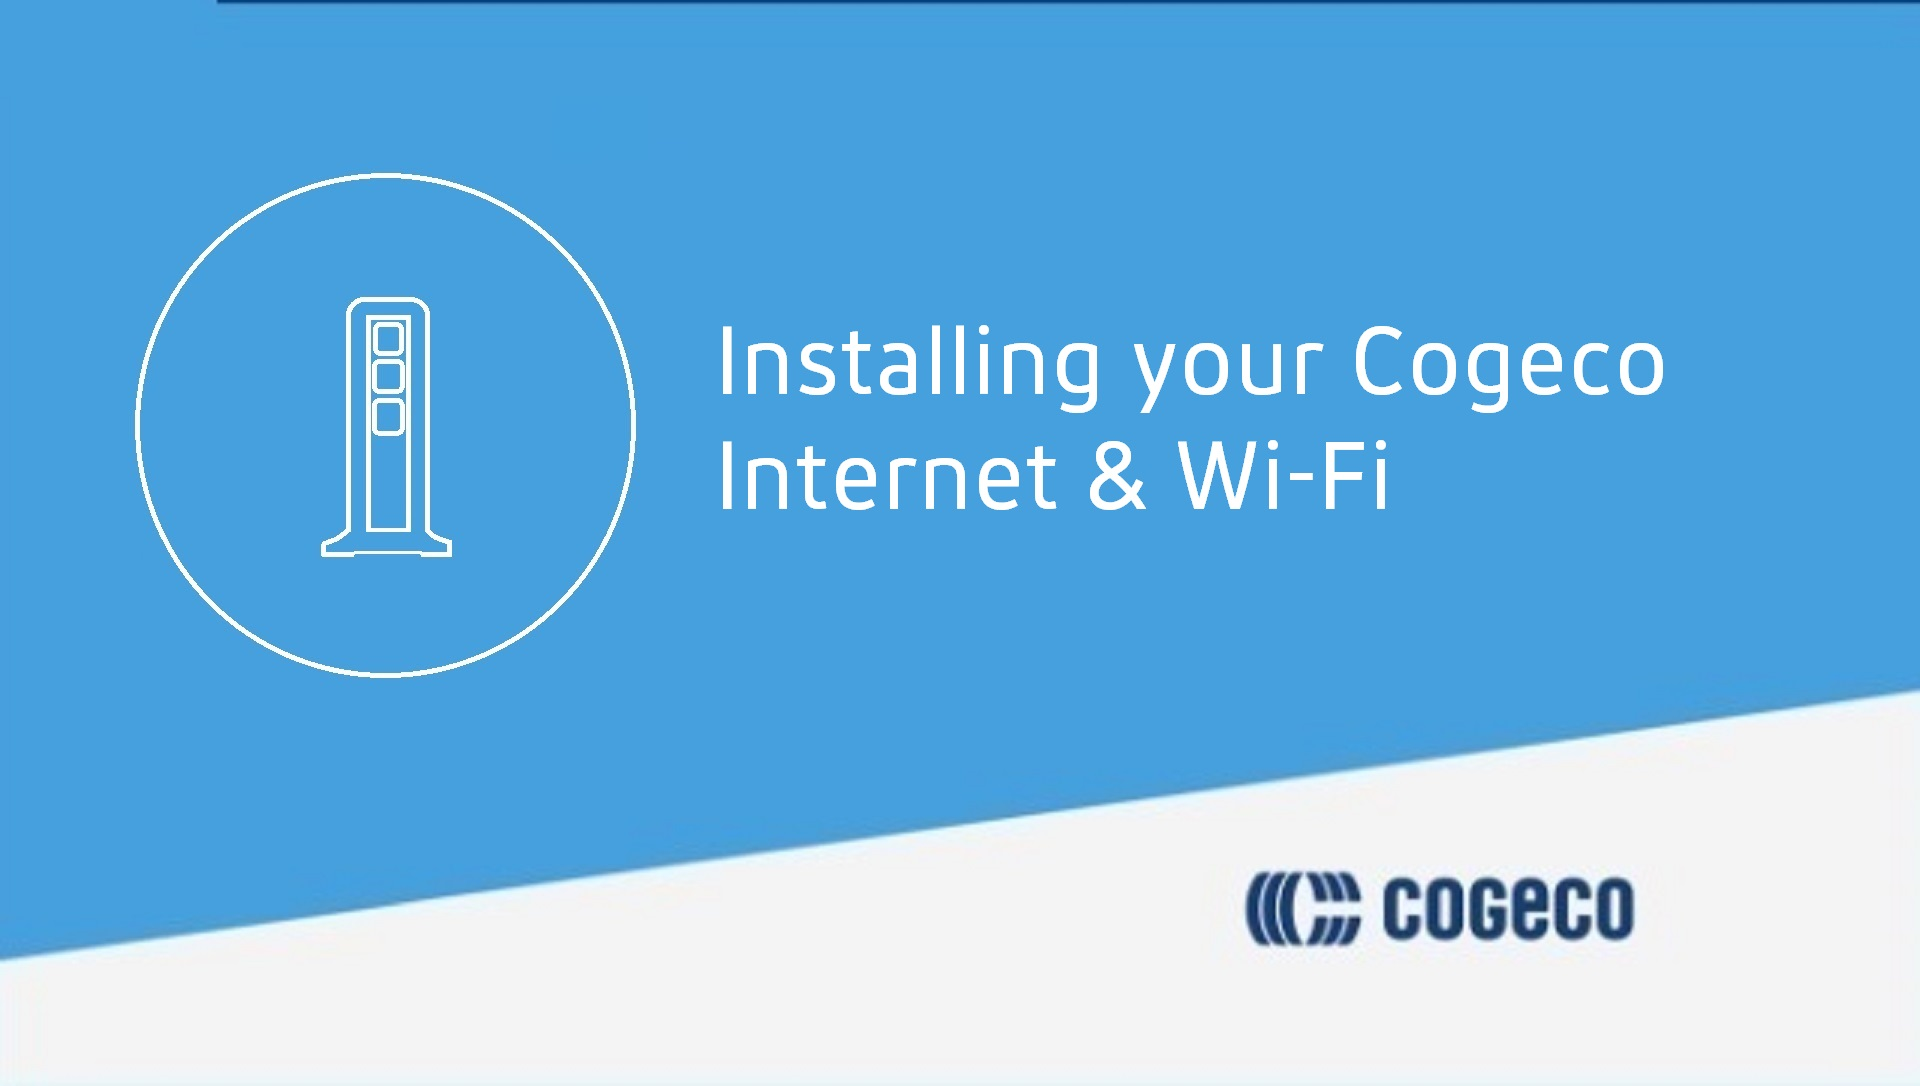 Installing your Cogeco Internet & Wi-Fi